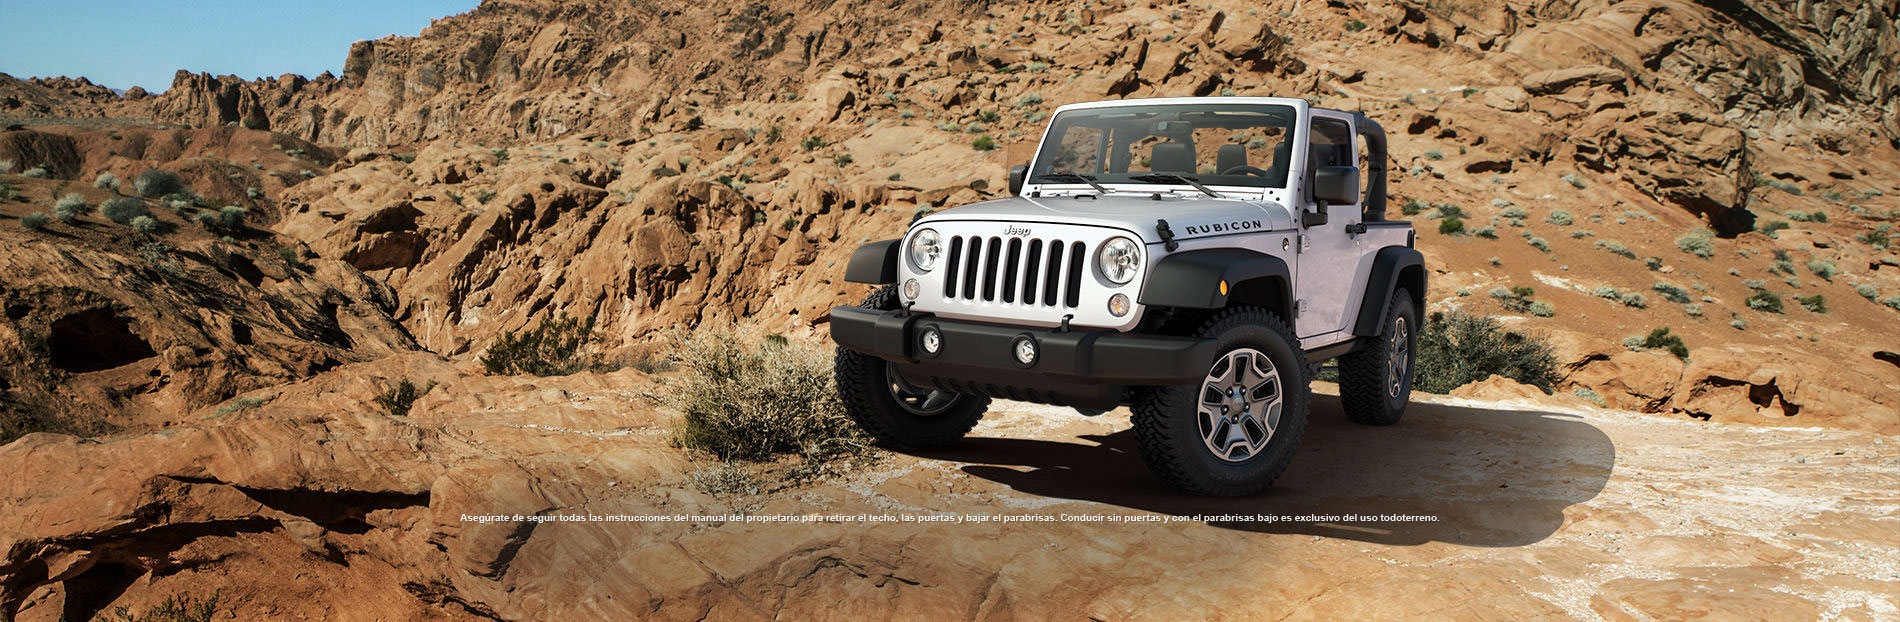 Se muestra Wrangler Unlimited Rubicon 10th Anniversary Edition 2013 en Billet Silver.